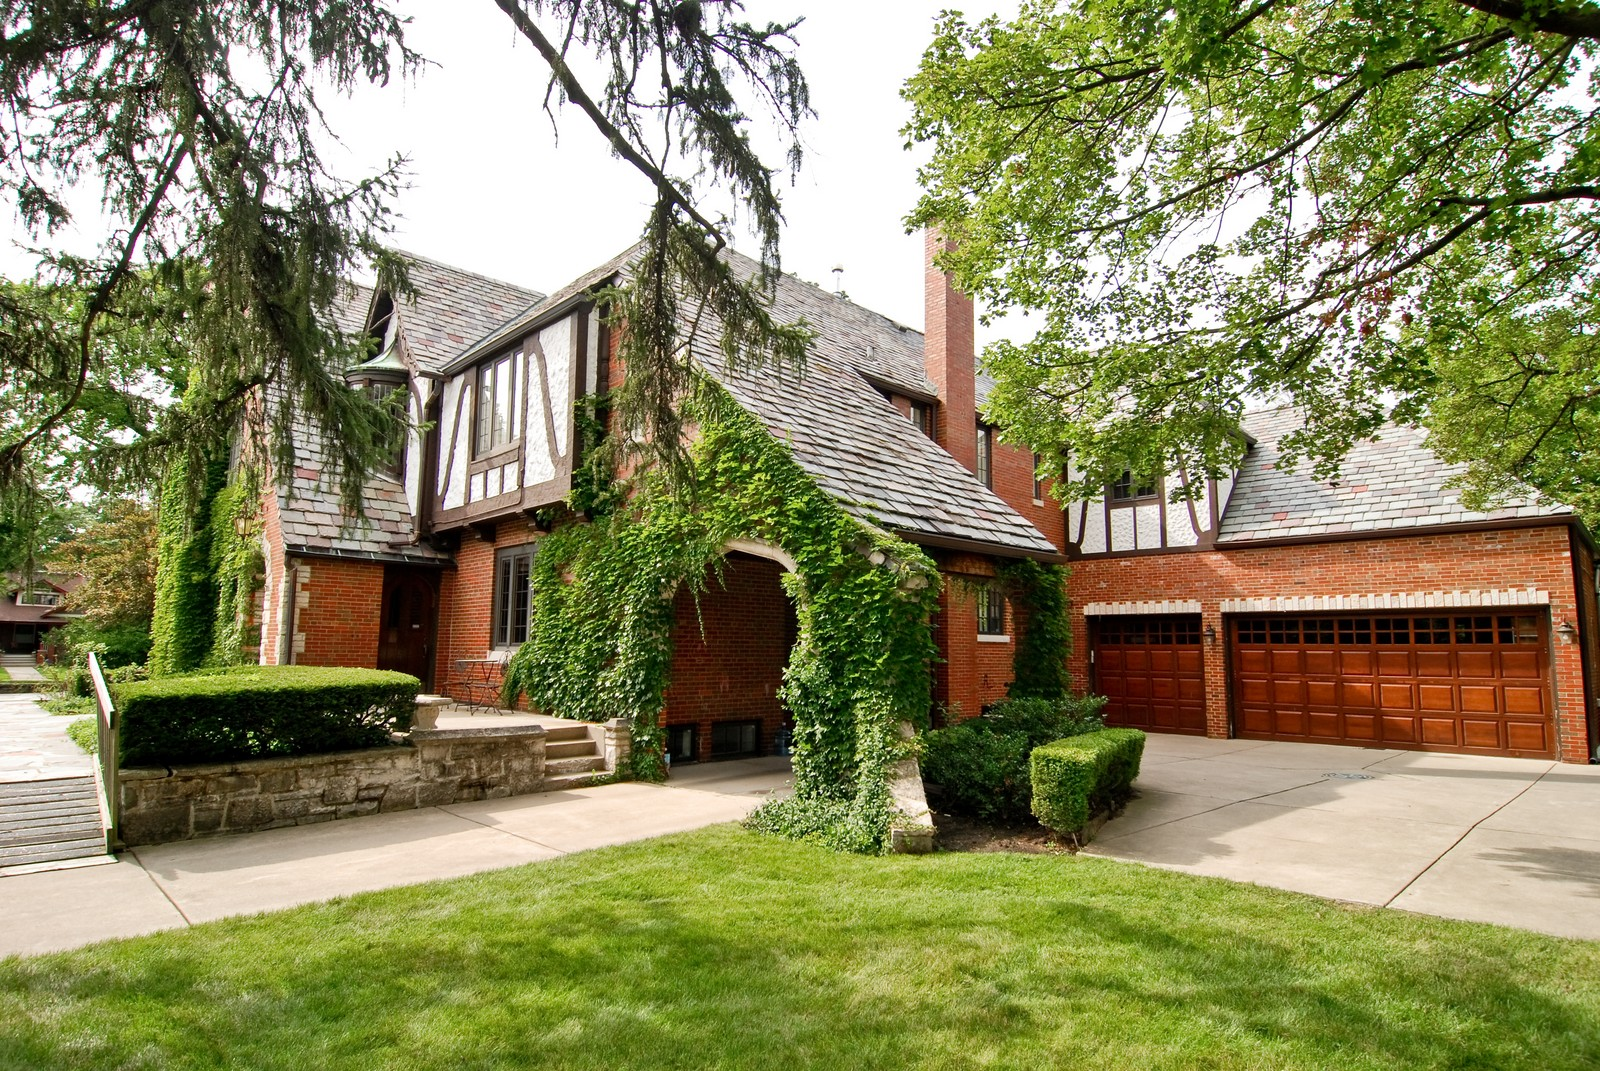 Real Estate Photography - 1105 Park Ave, River Forest, IL, 60305 - Location 1